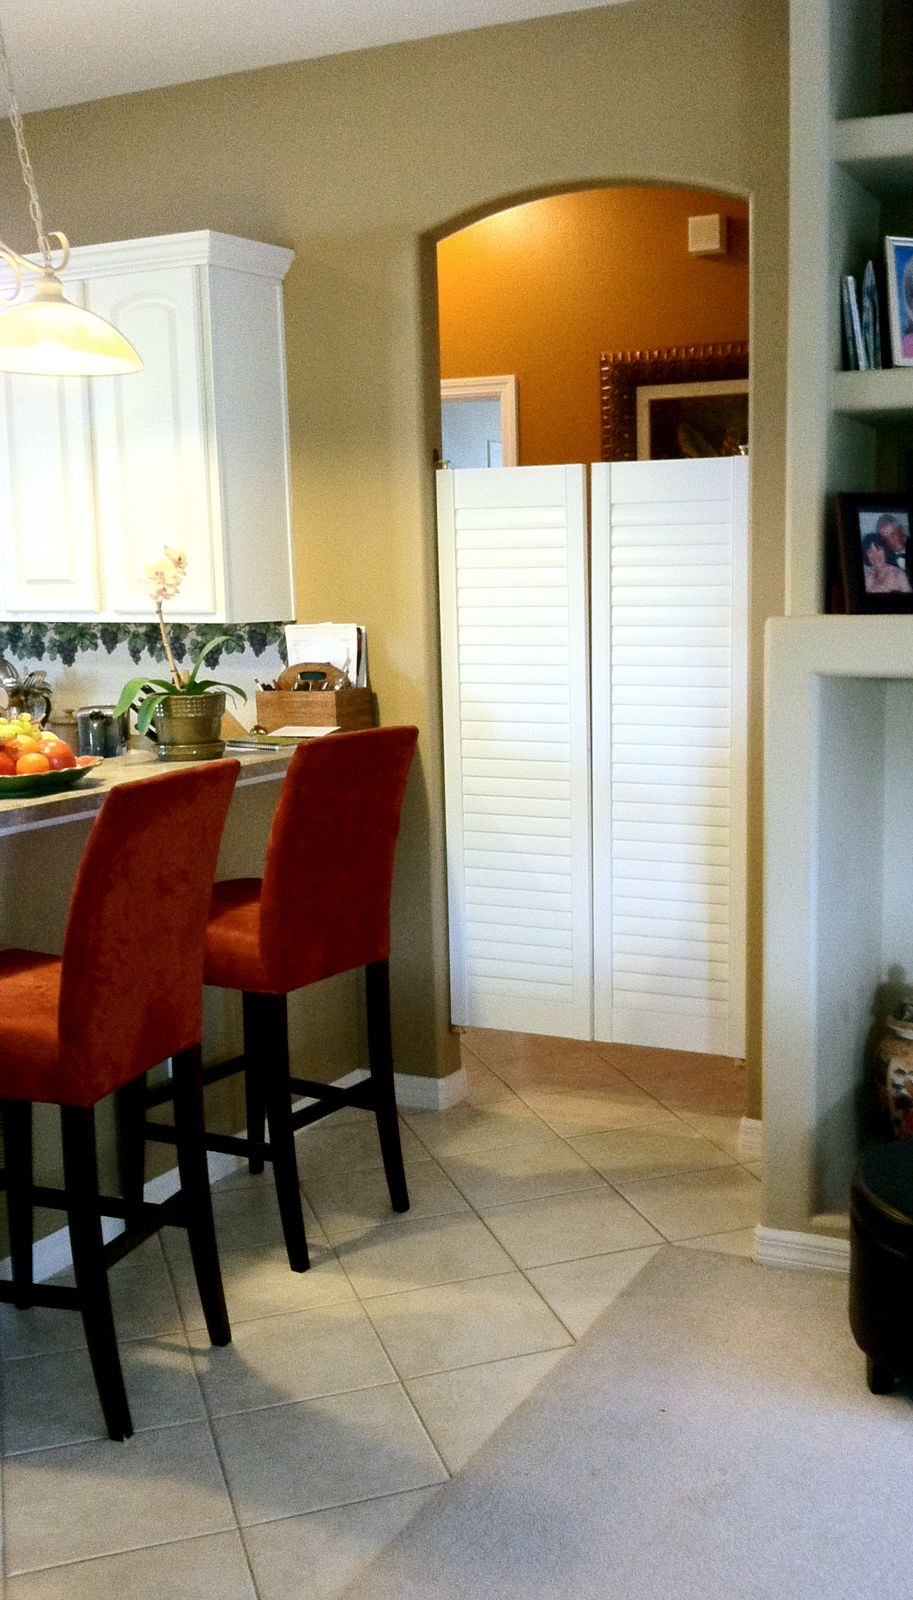 Norman shutters installed as saloon doors beautiful way - Doors to separate kitchen from living room ...